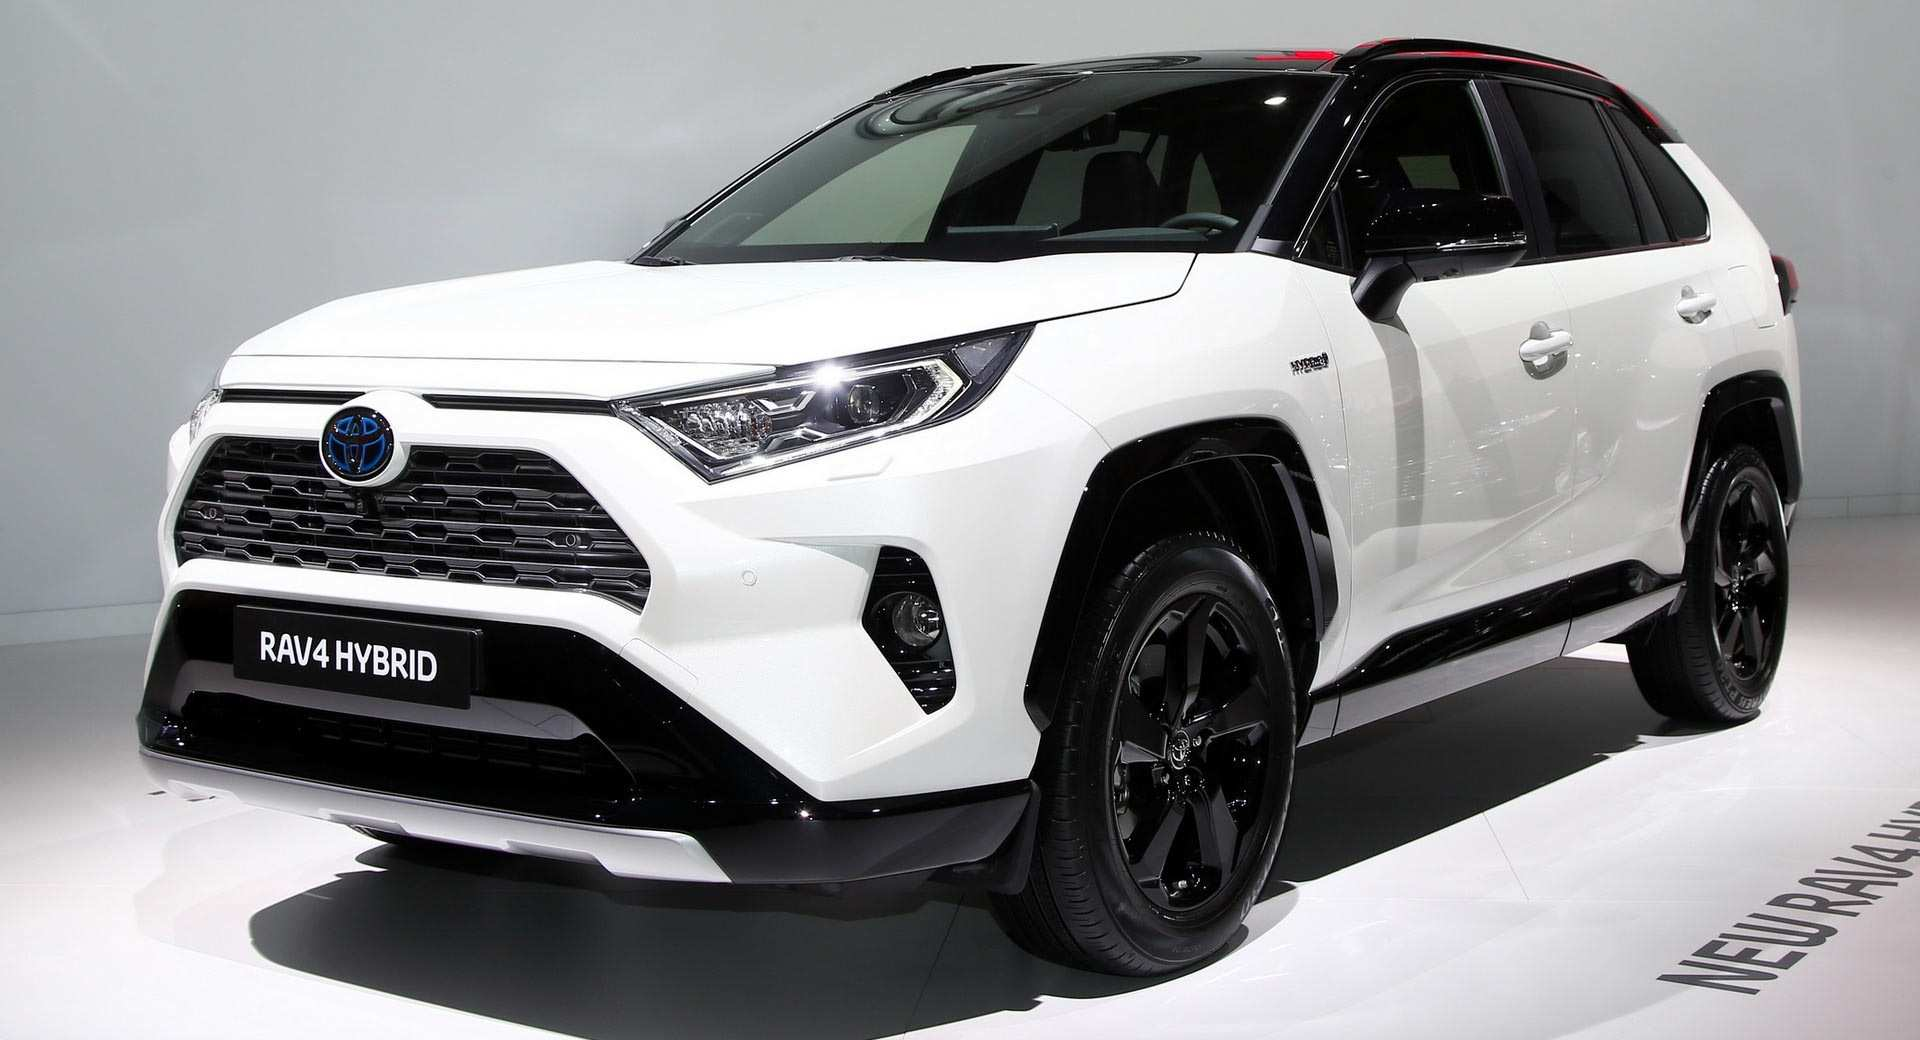 74 New 2019 Toyota Rav4 Specs Picture Release Date And Review Exterior by 2019 Toyota Rav4 Specs Picture Release Date And Review